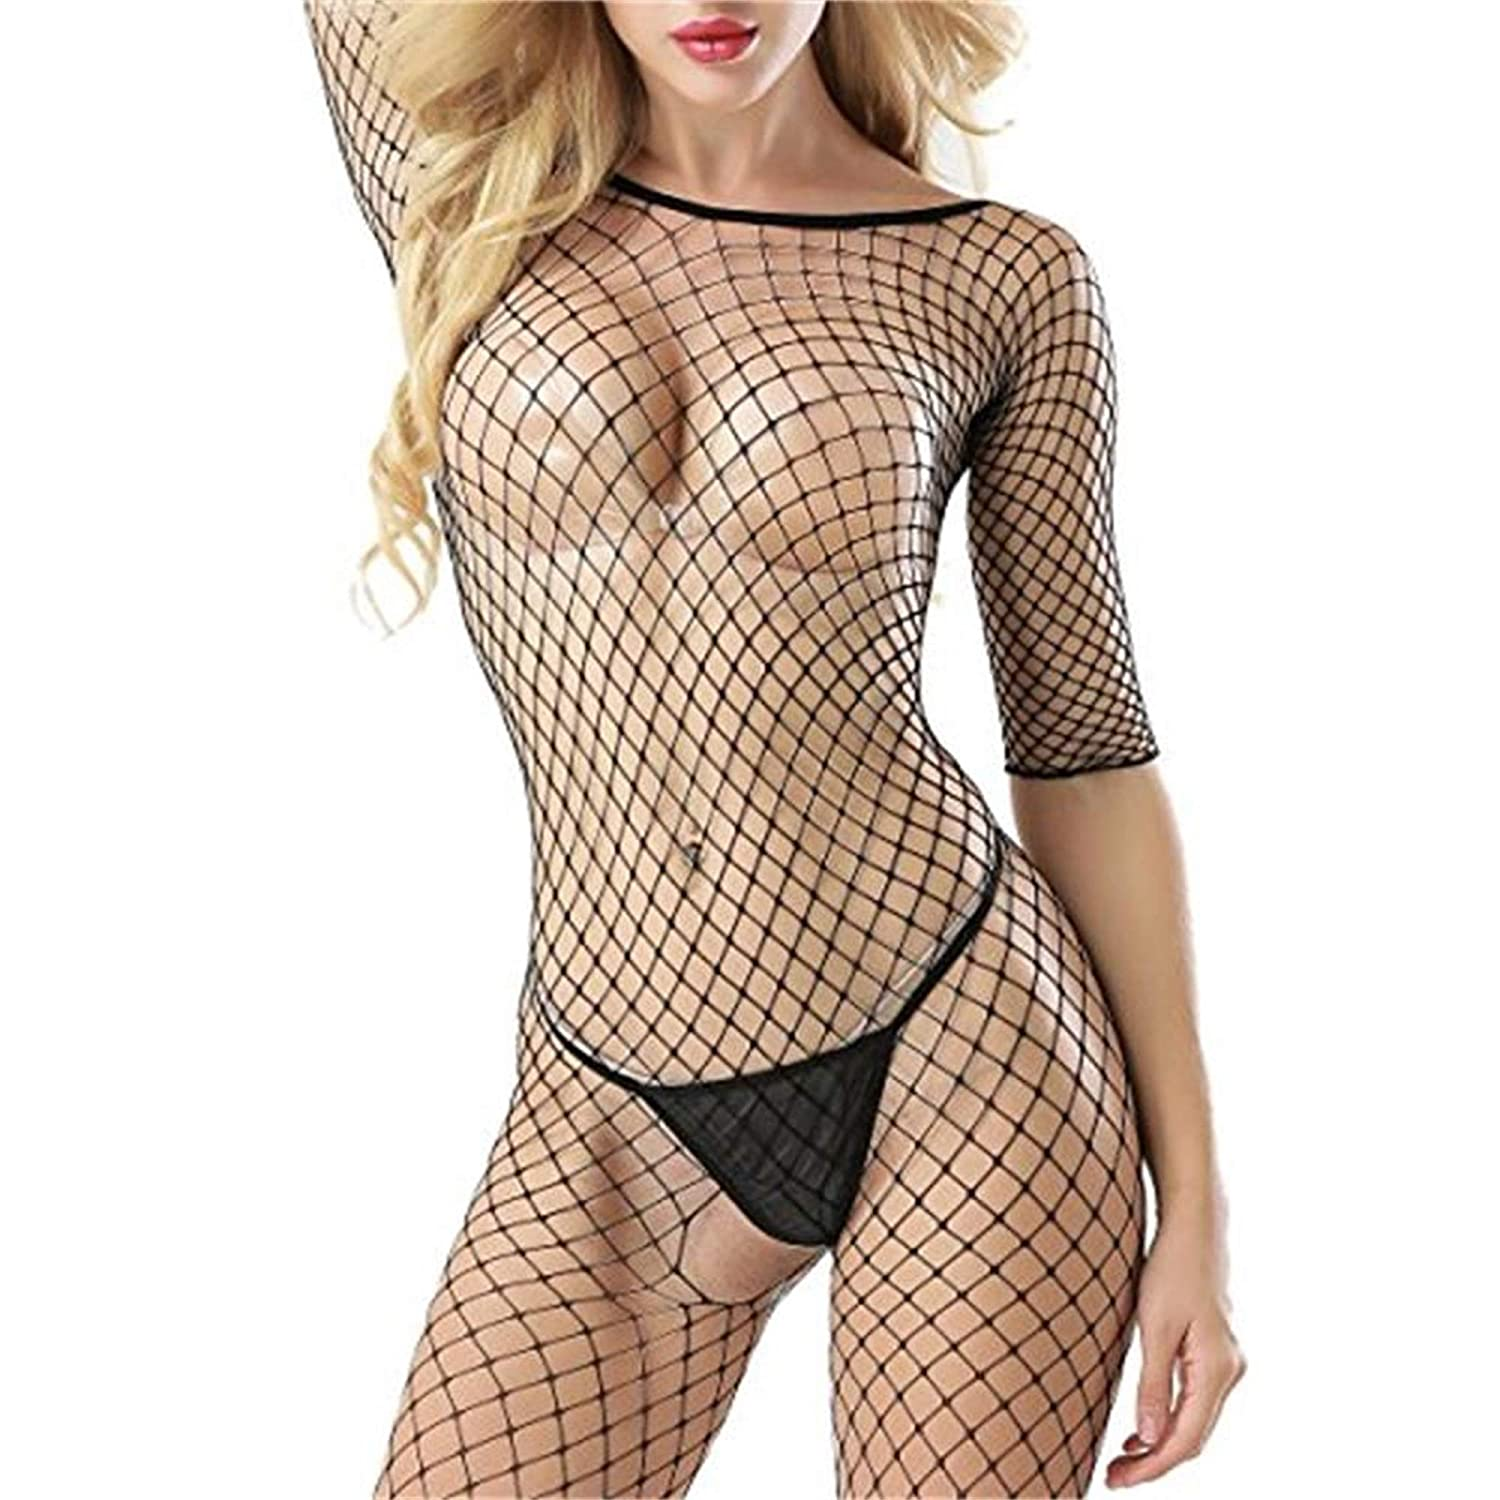 MHOYI Fishnet Bodysuit Lingerie for Women b39c23e9f